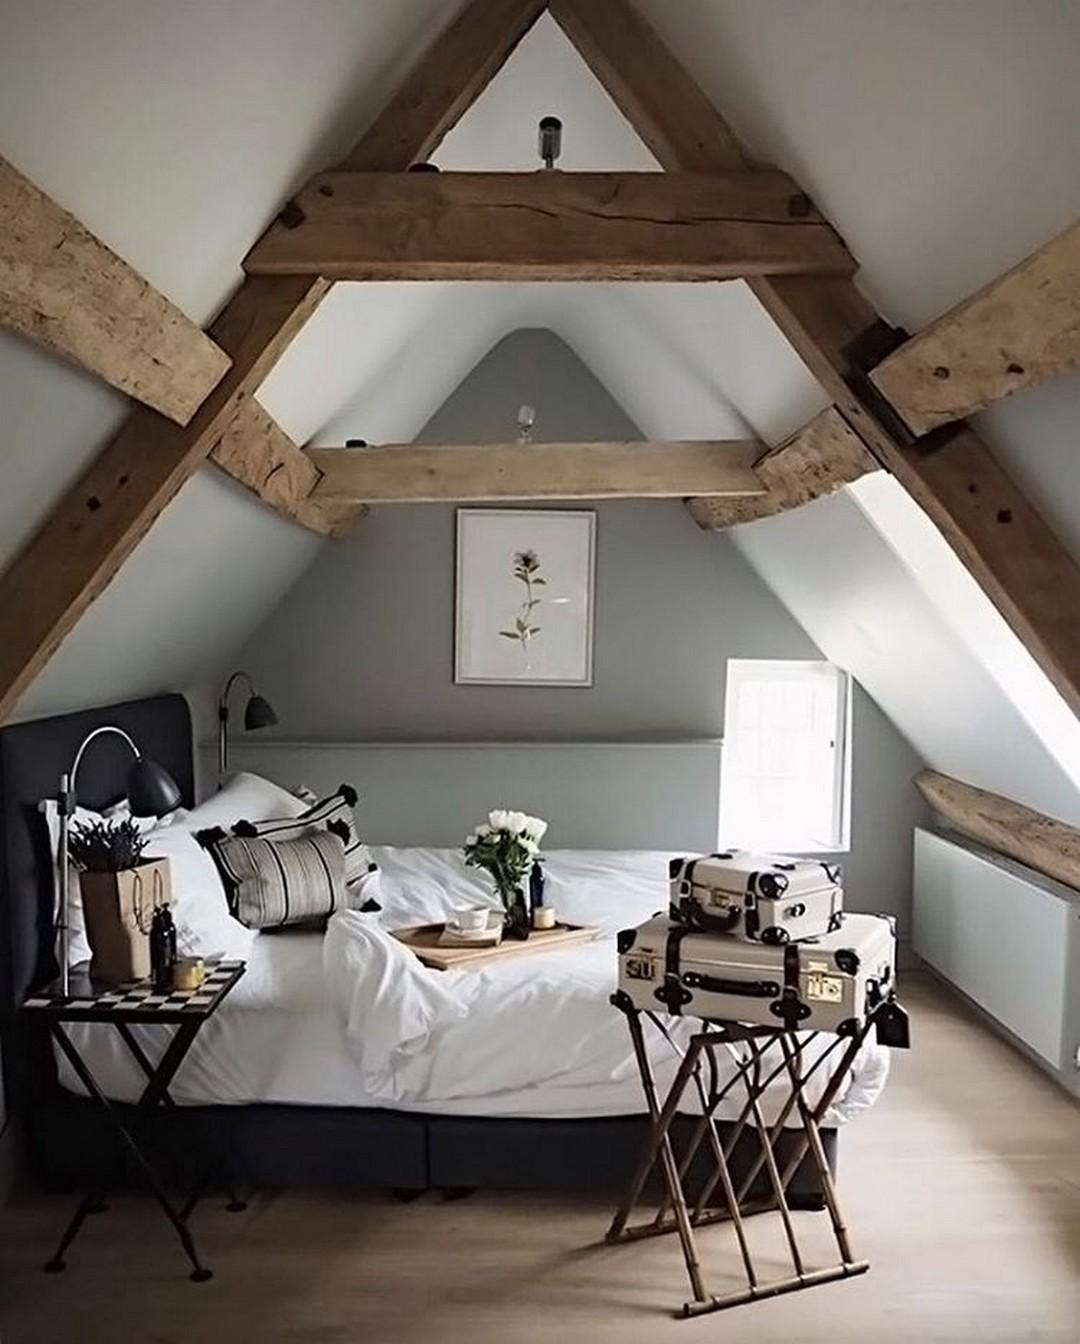 Modern Stylish Rustic Scandinavian Bedroom Decor